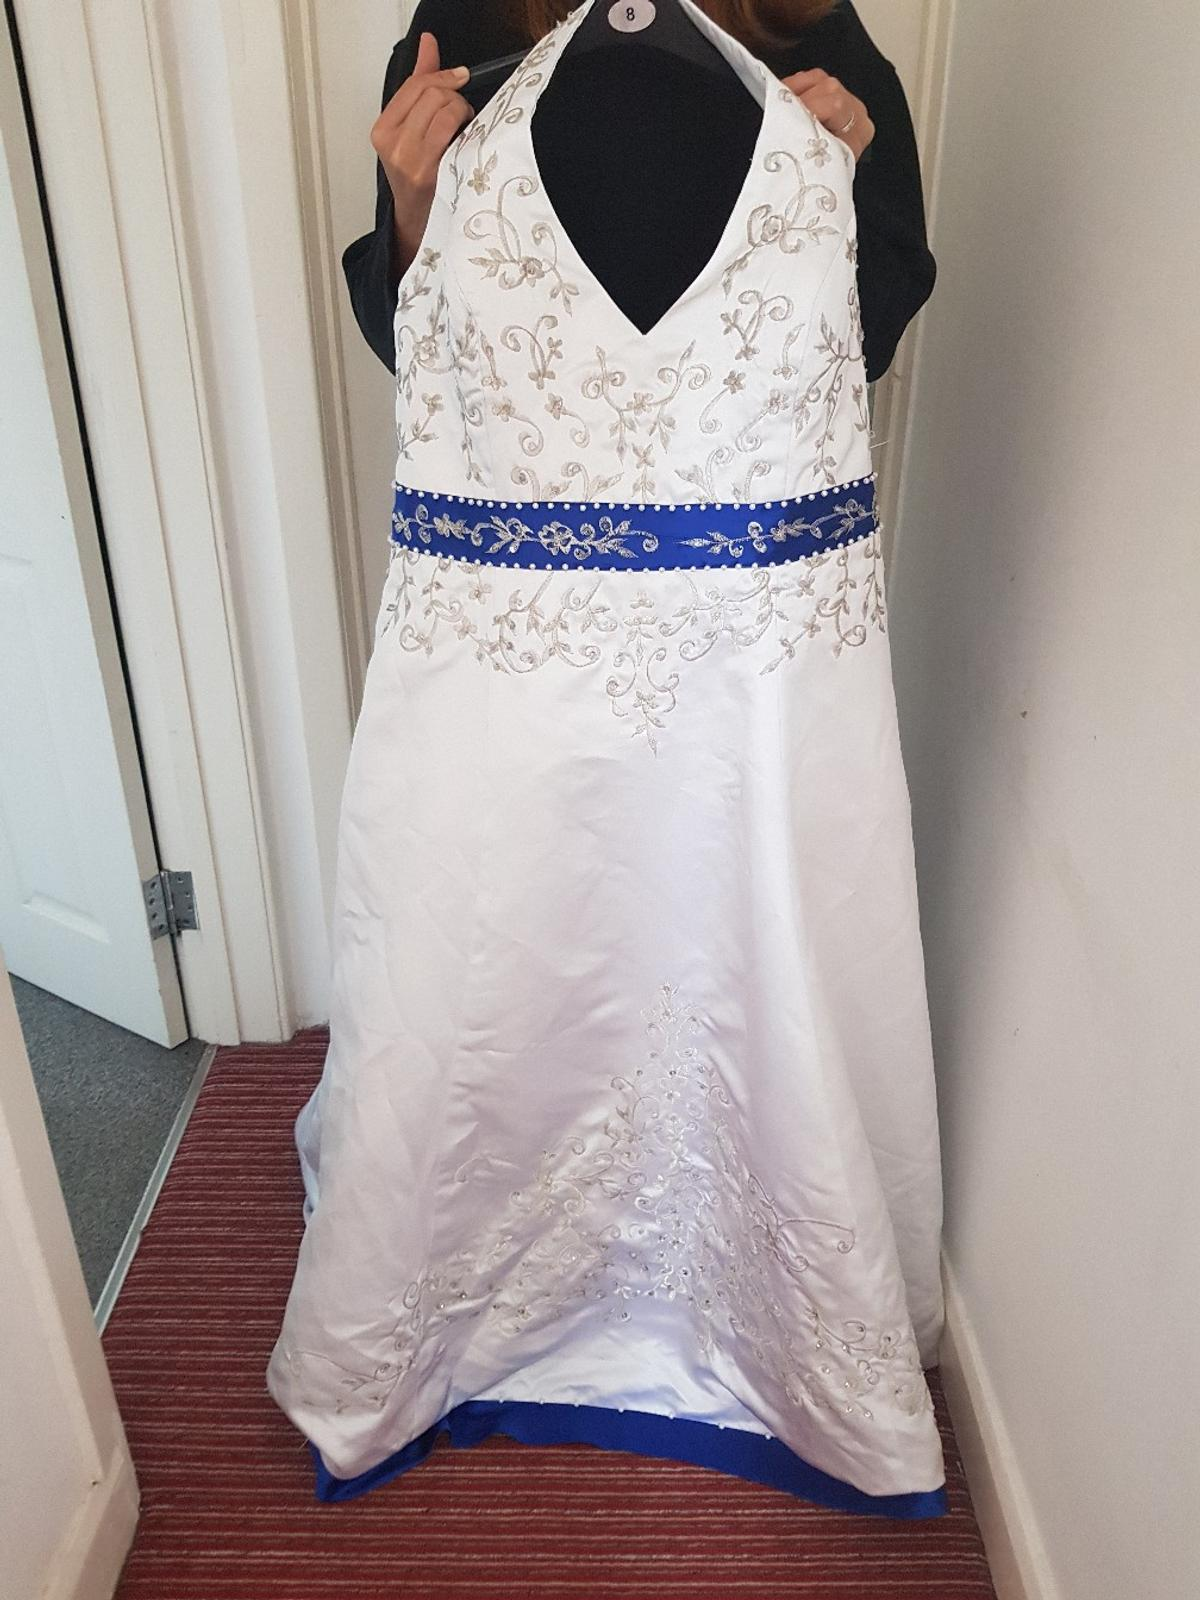 Plus Size White And Royal Blue Wedding Dress In Barnsley For